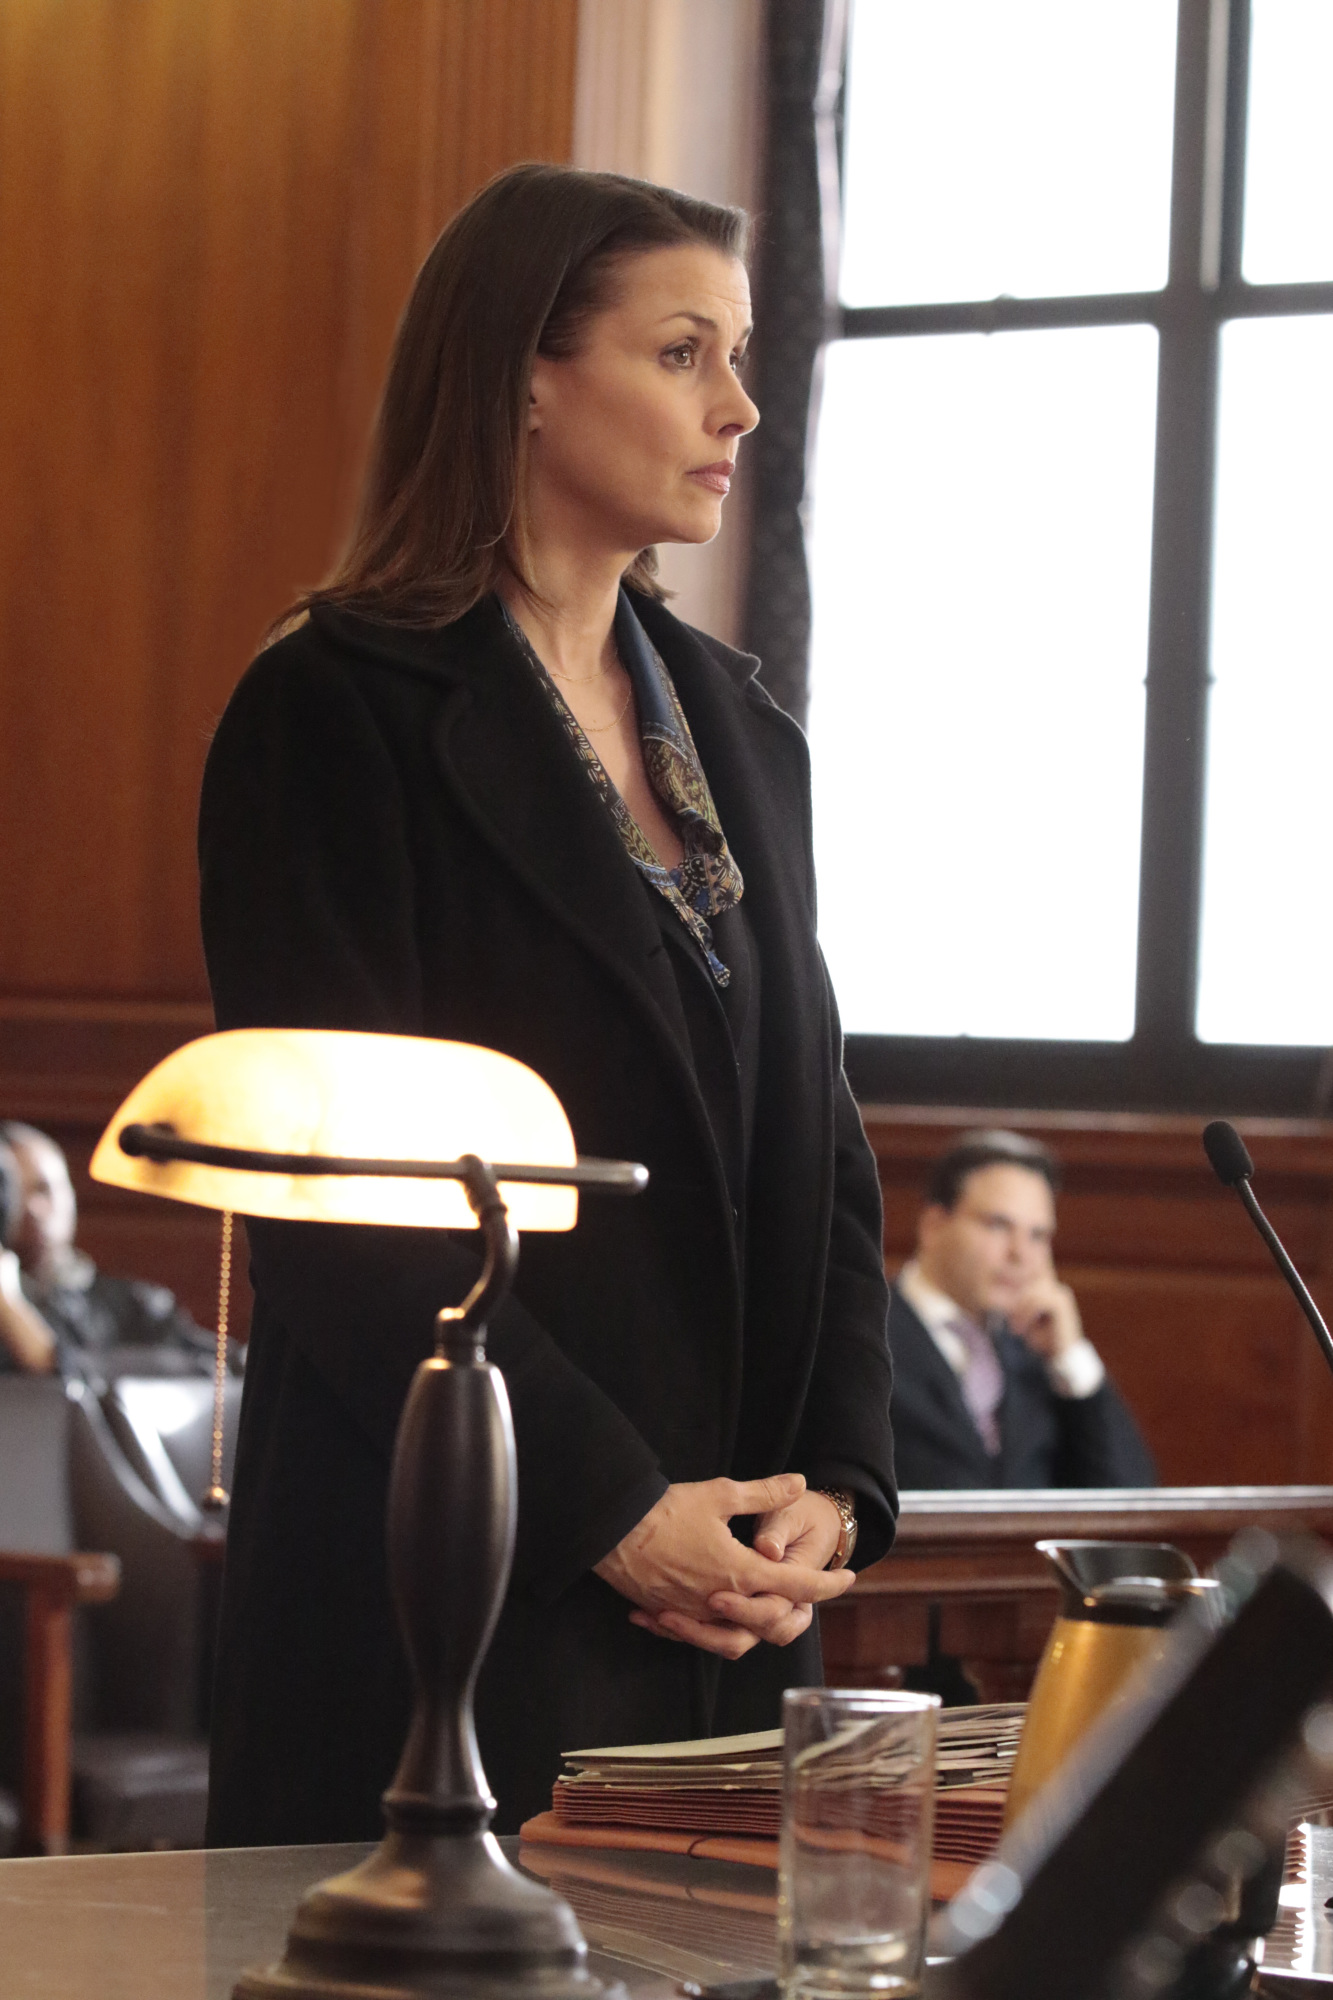 Erin Reagan stands in front of the judge.